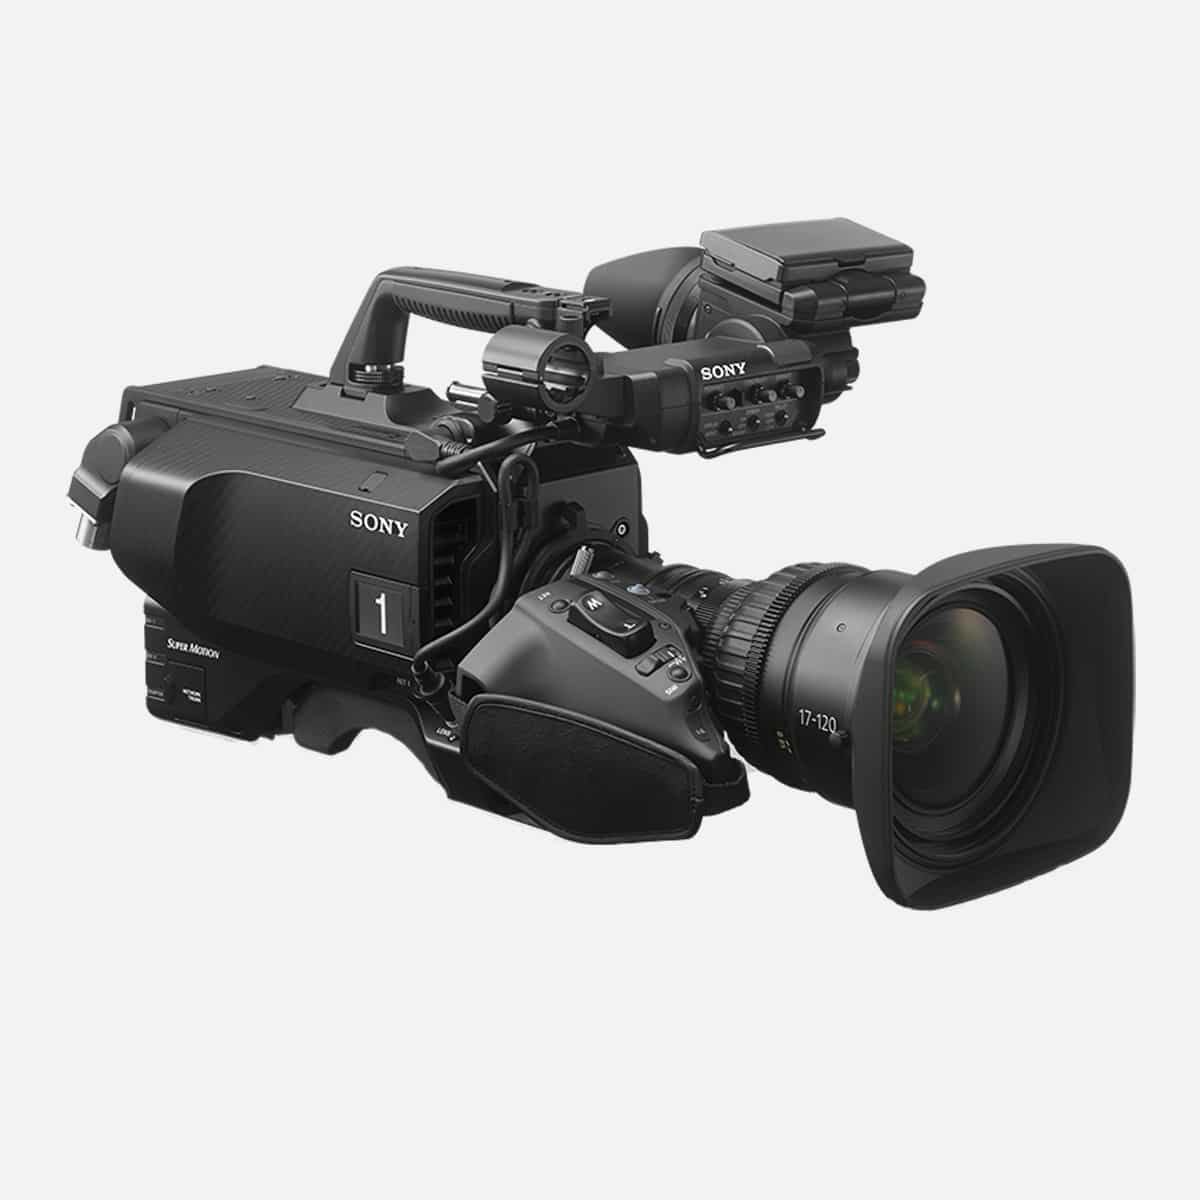 SONY HDC-4800 Ultra HIgh Frame Rate 4K Camera Channel